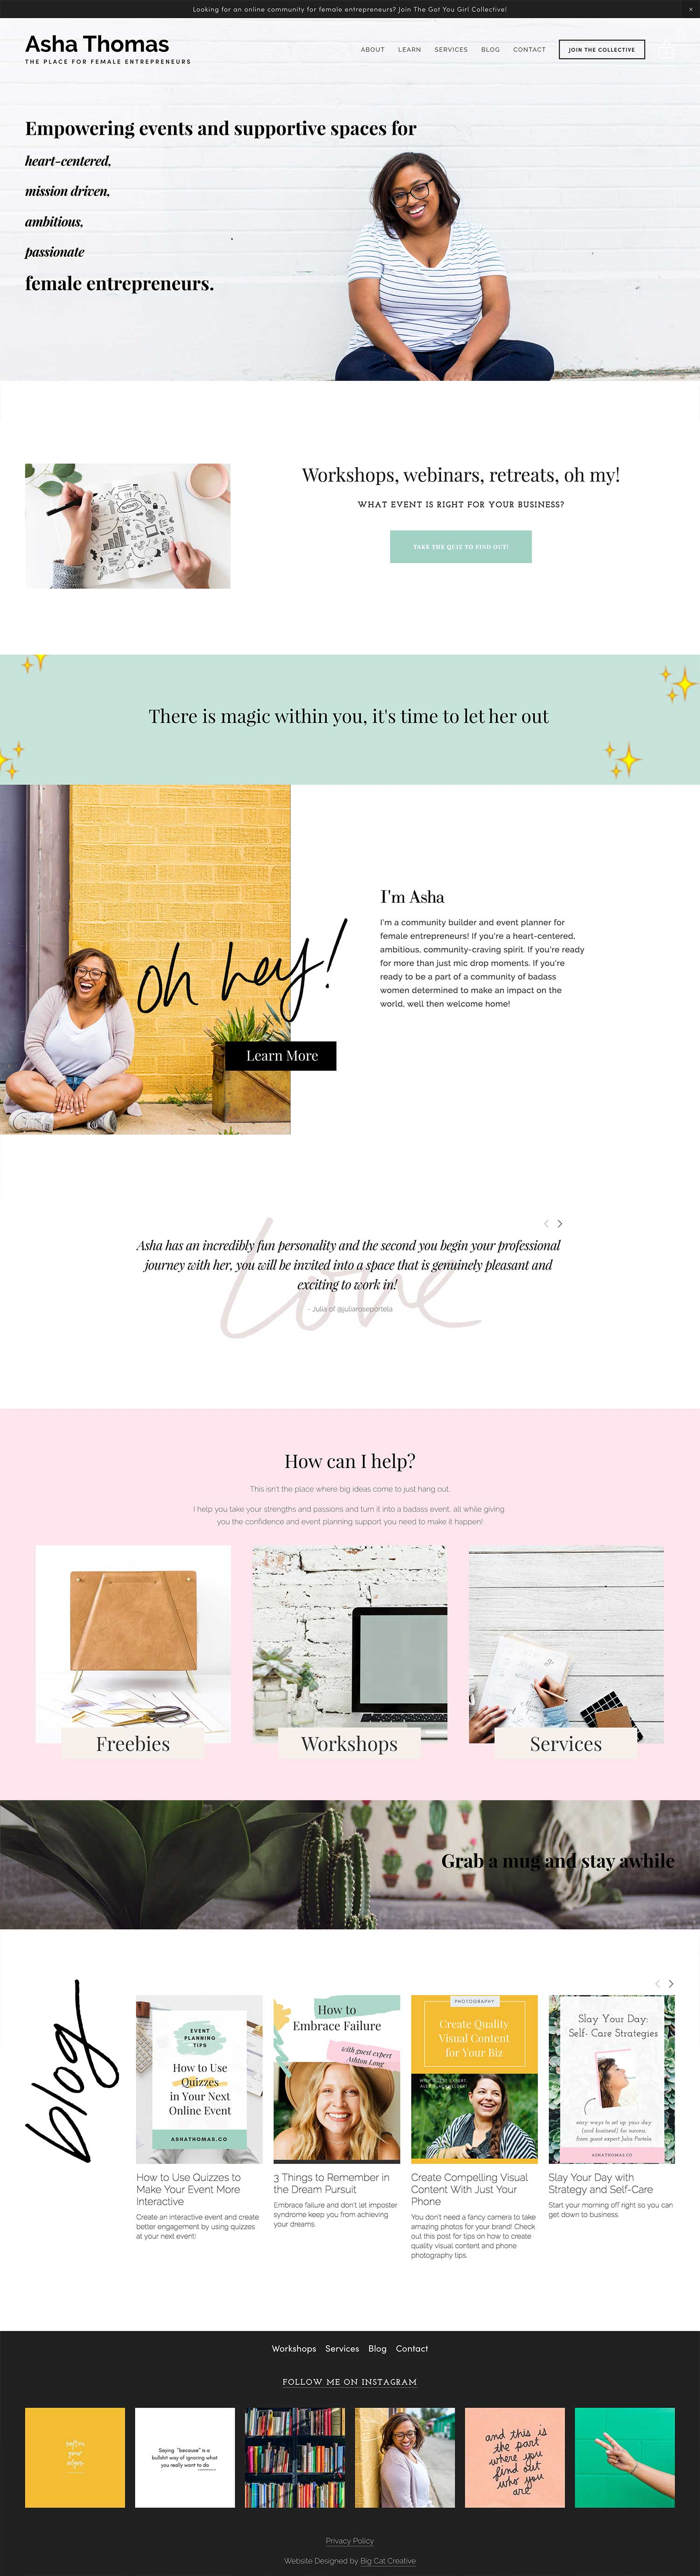 Lacy Squarespace Template by Big Cat Creative - Easy to use Squarespace Template Kits - Squarespace Template | Squarespace Theme | Squarespace Website Design | Squarespace Template for Sale | Website Template | Website Theme | Modern Website Design | Squarespace Inspiration | Website Layout | Blog Design | Minimal Web Design | Squarespace Kits | Templates #squarespace #webdesign #design